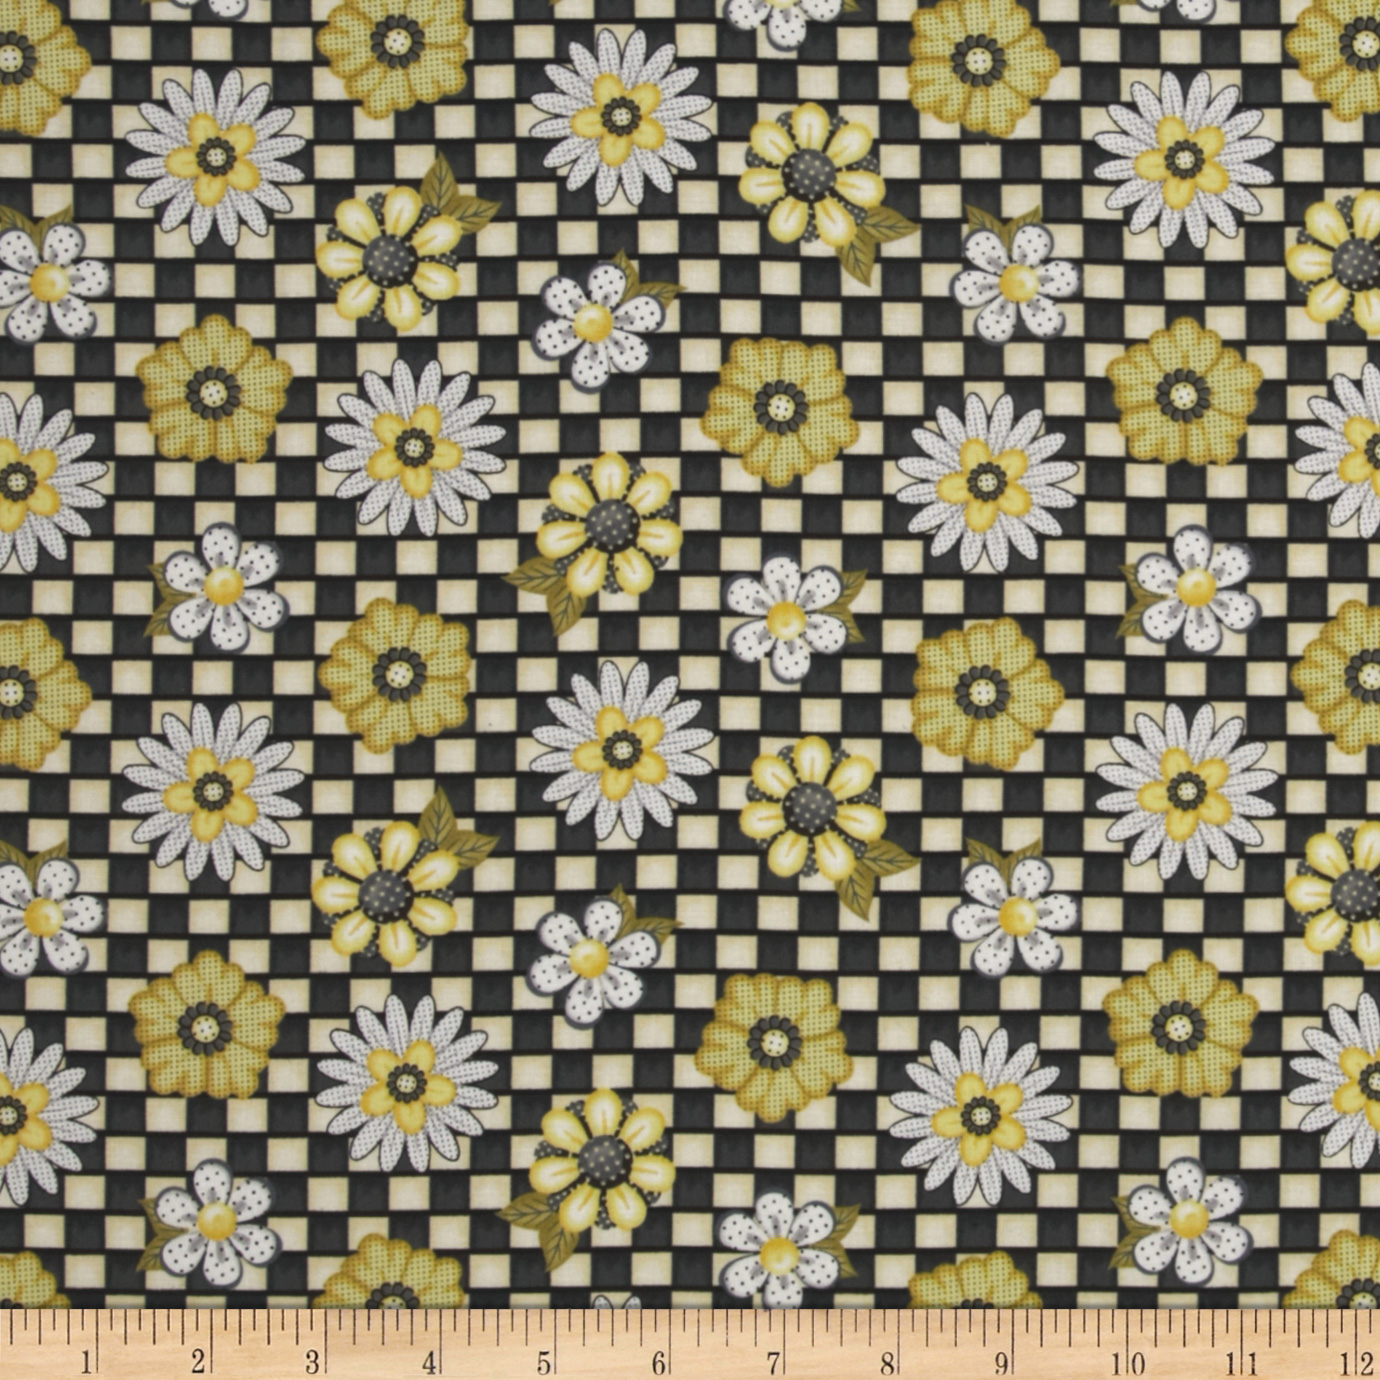 Honey Bee Mine Daisy Allover Black Fabric